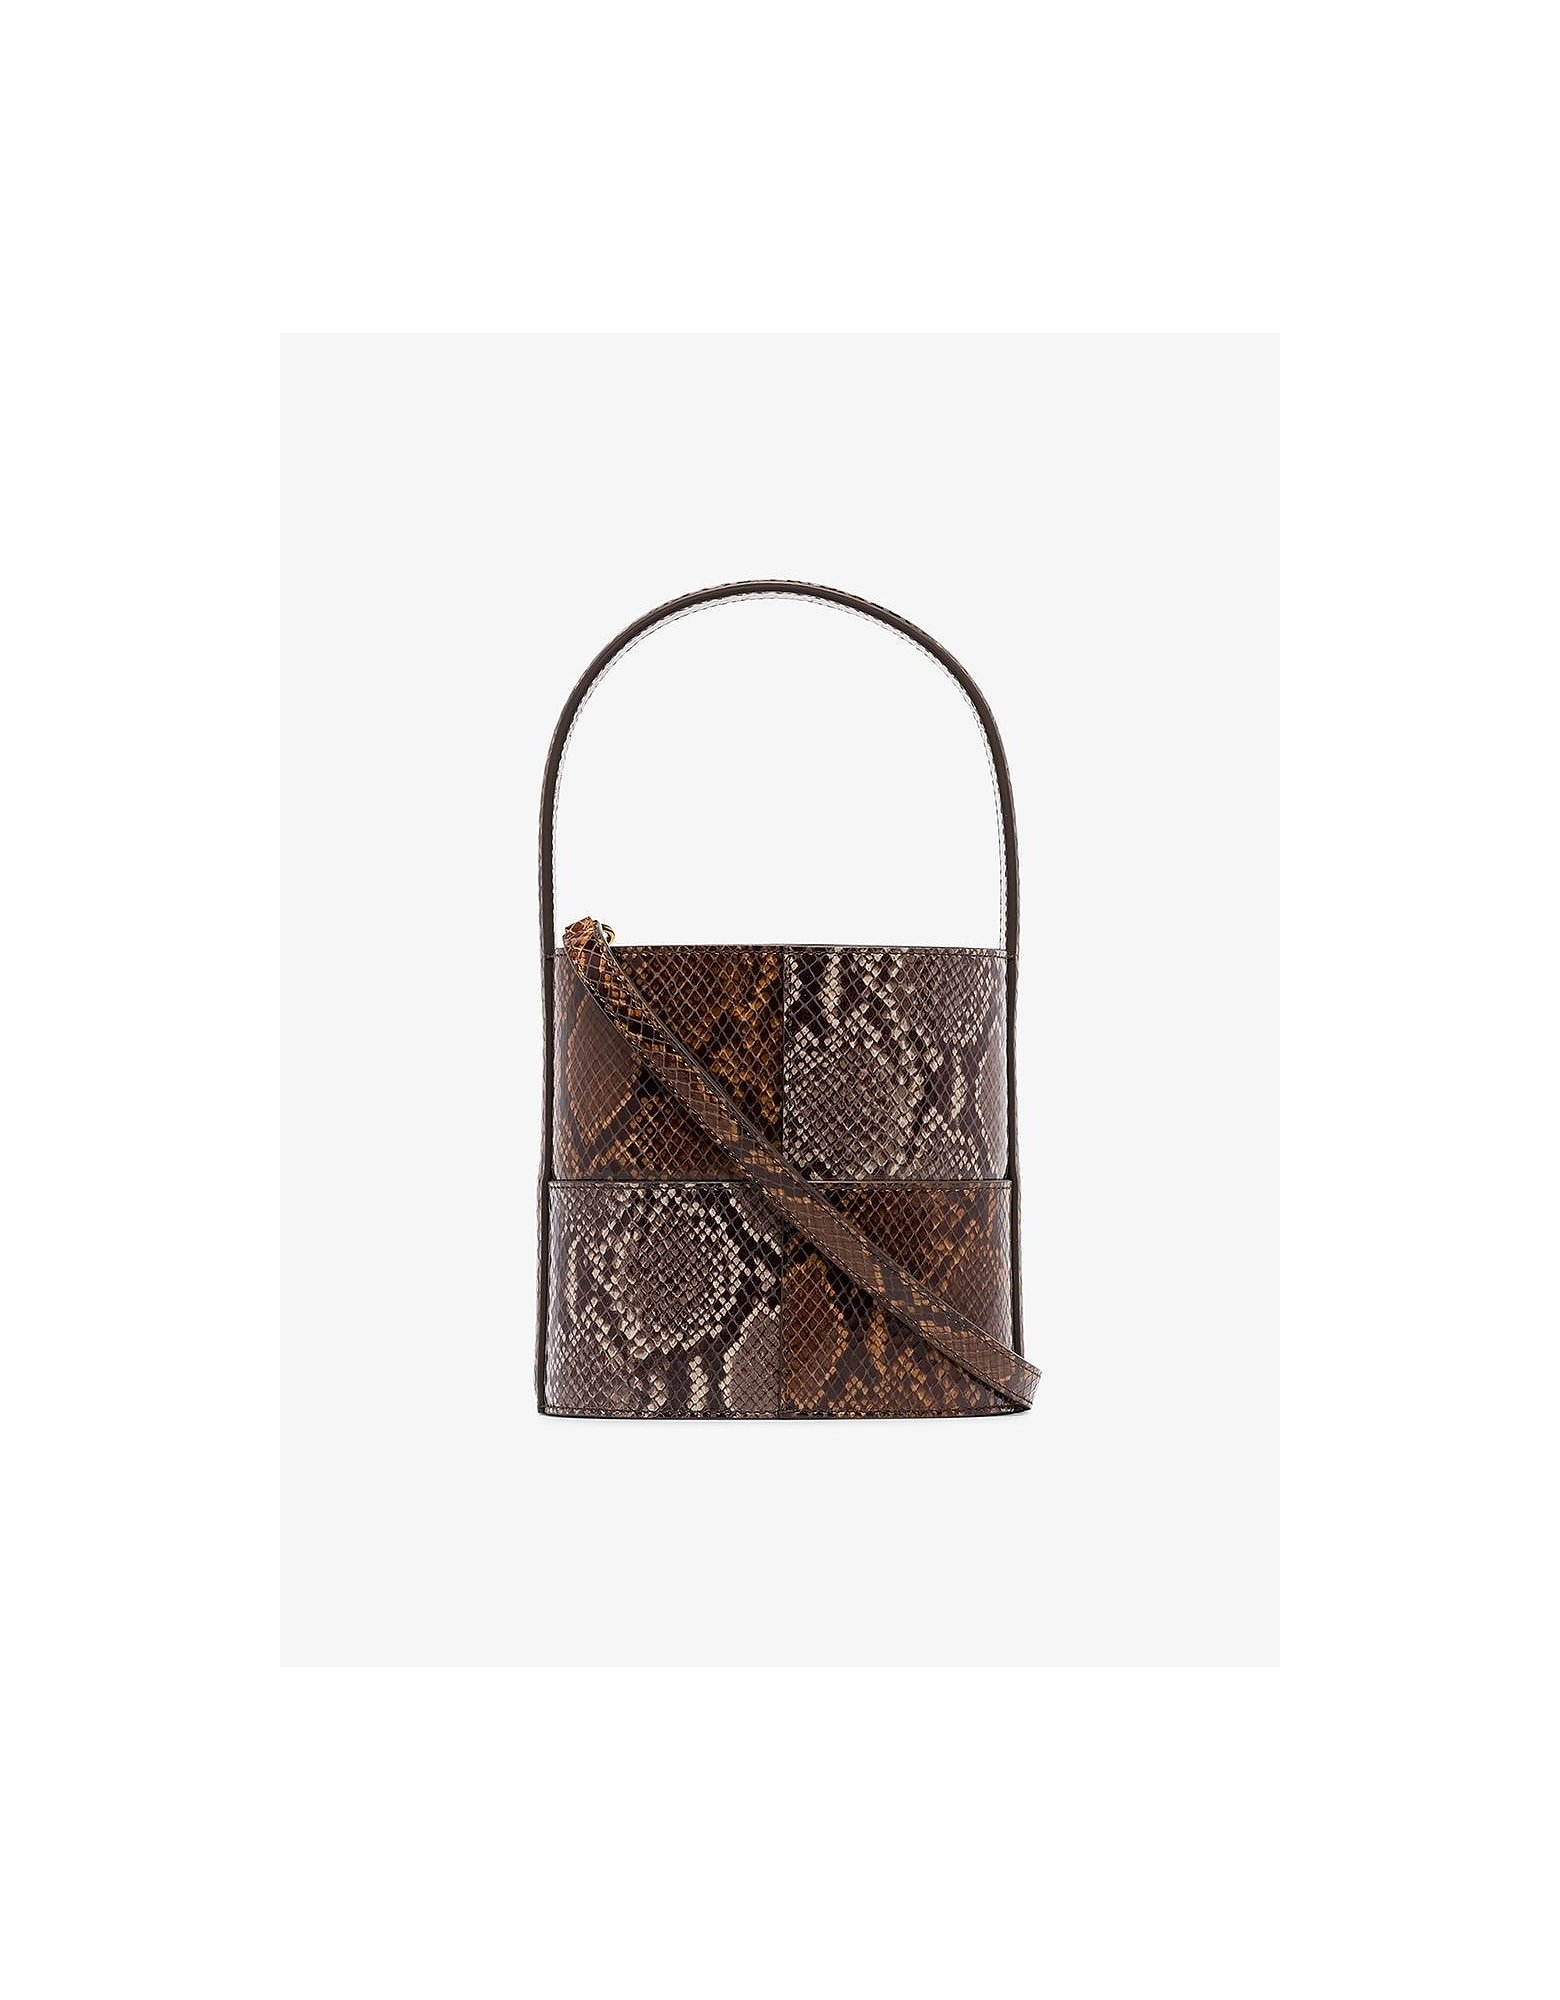 Staud Bags BISSET BICOLOR SNAKE EMBOSSED LEATHER BUCKET BAG